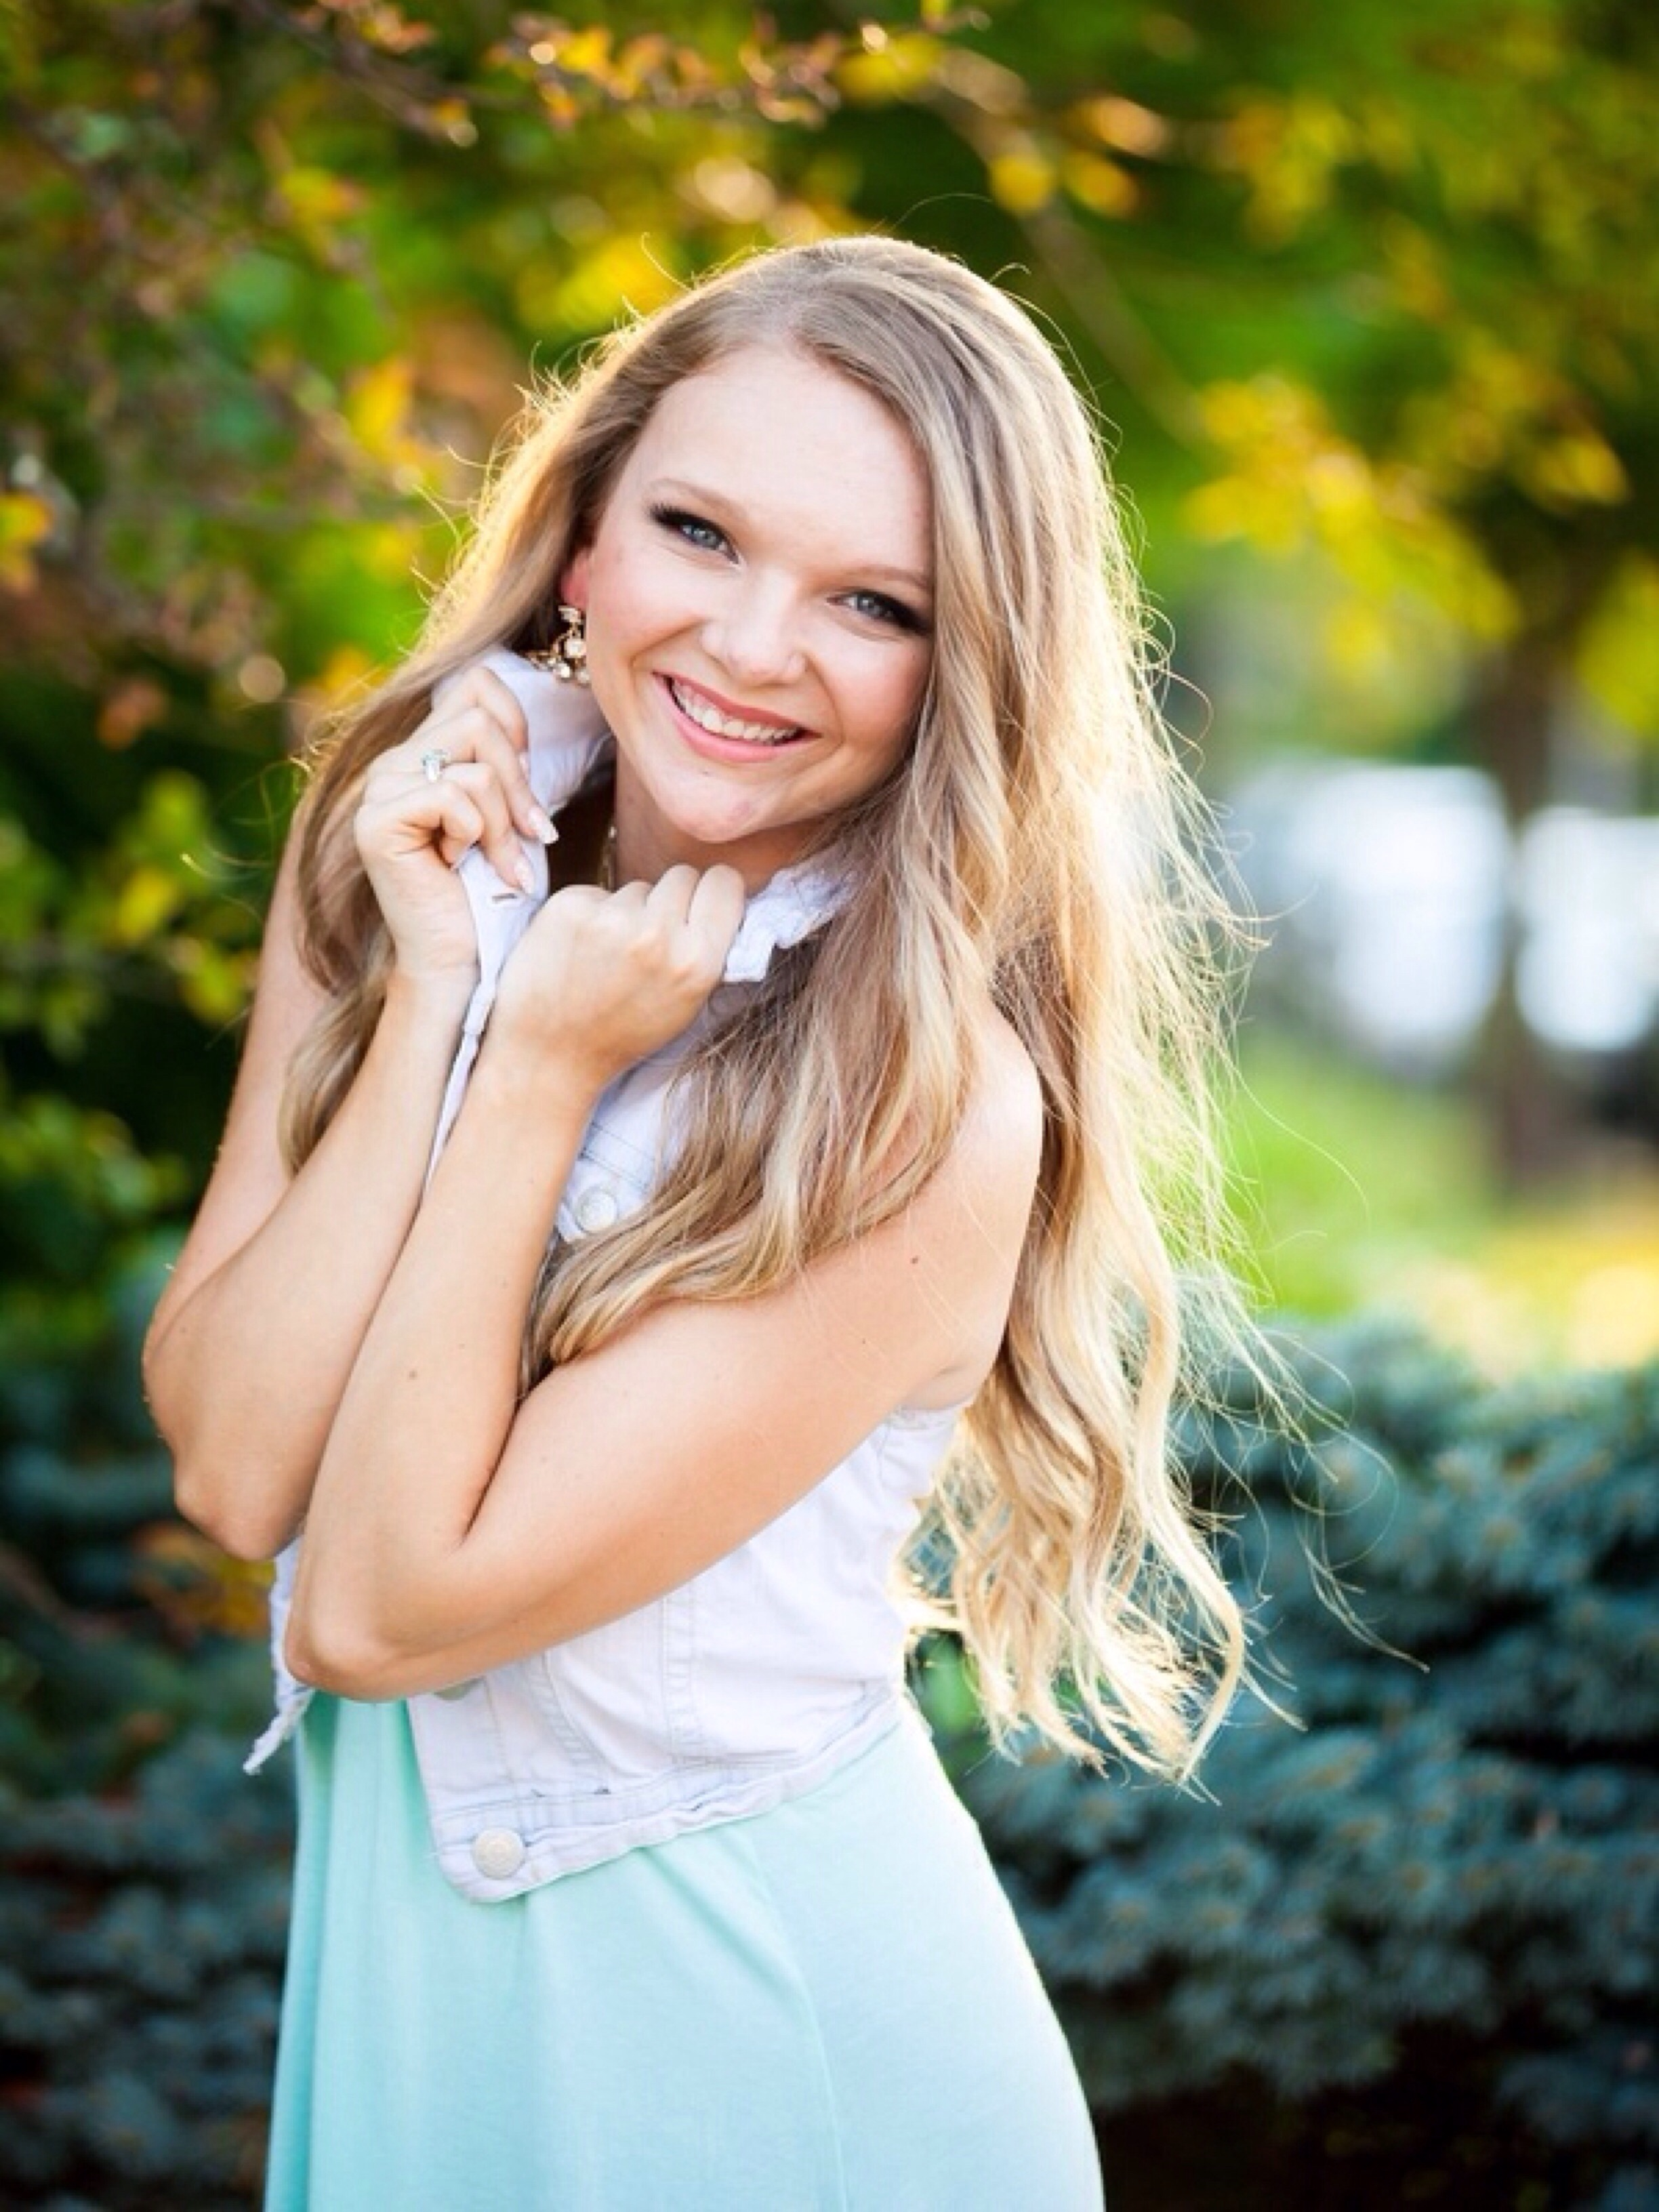 Downtown Urbana Senior Session: Mager Image Photography via Heather Renee Celebrations